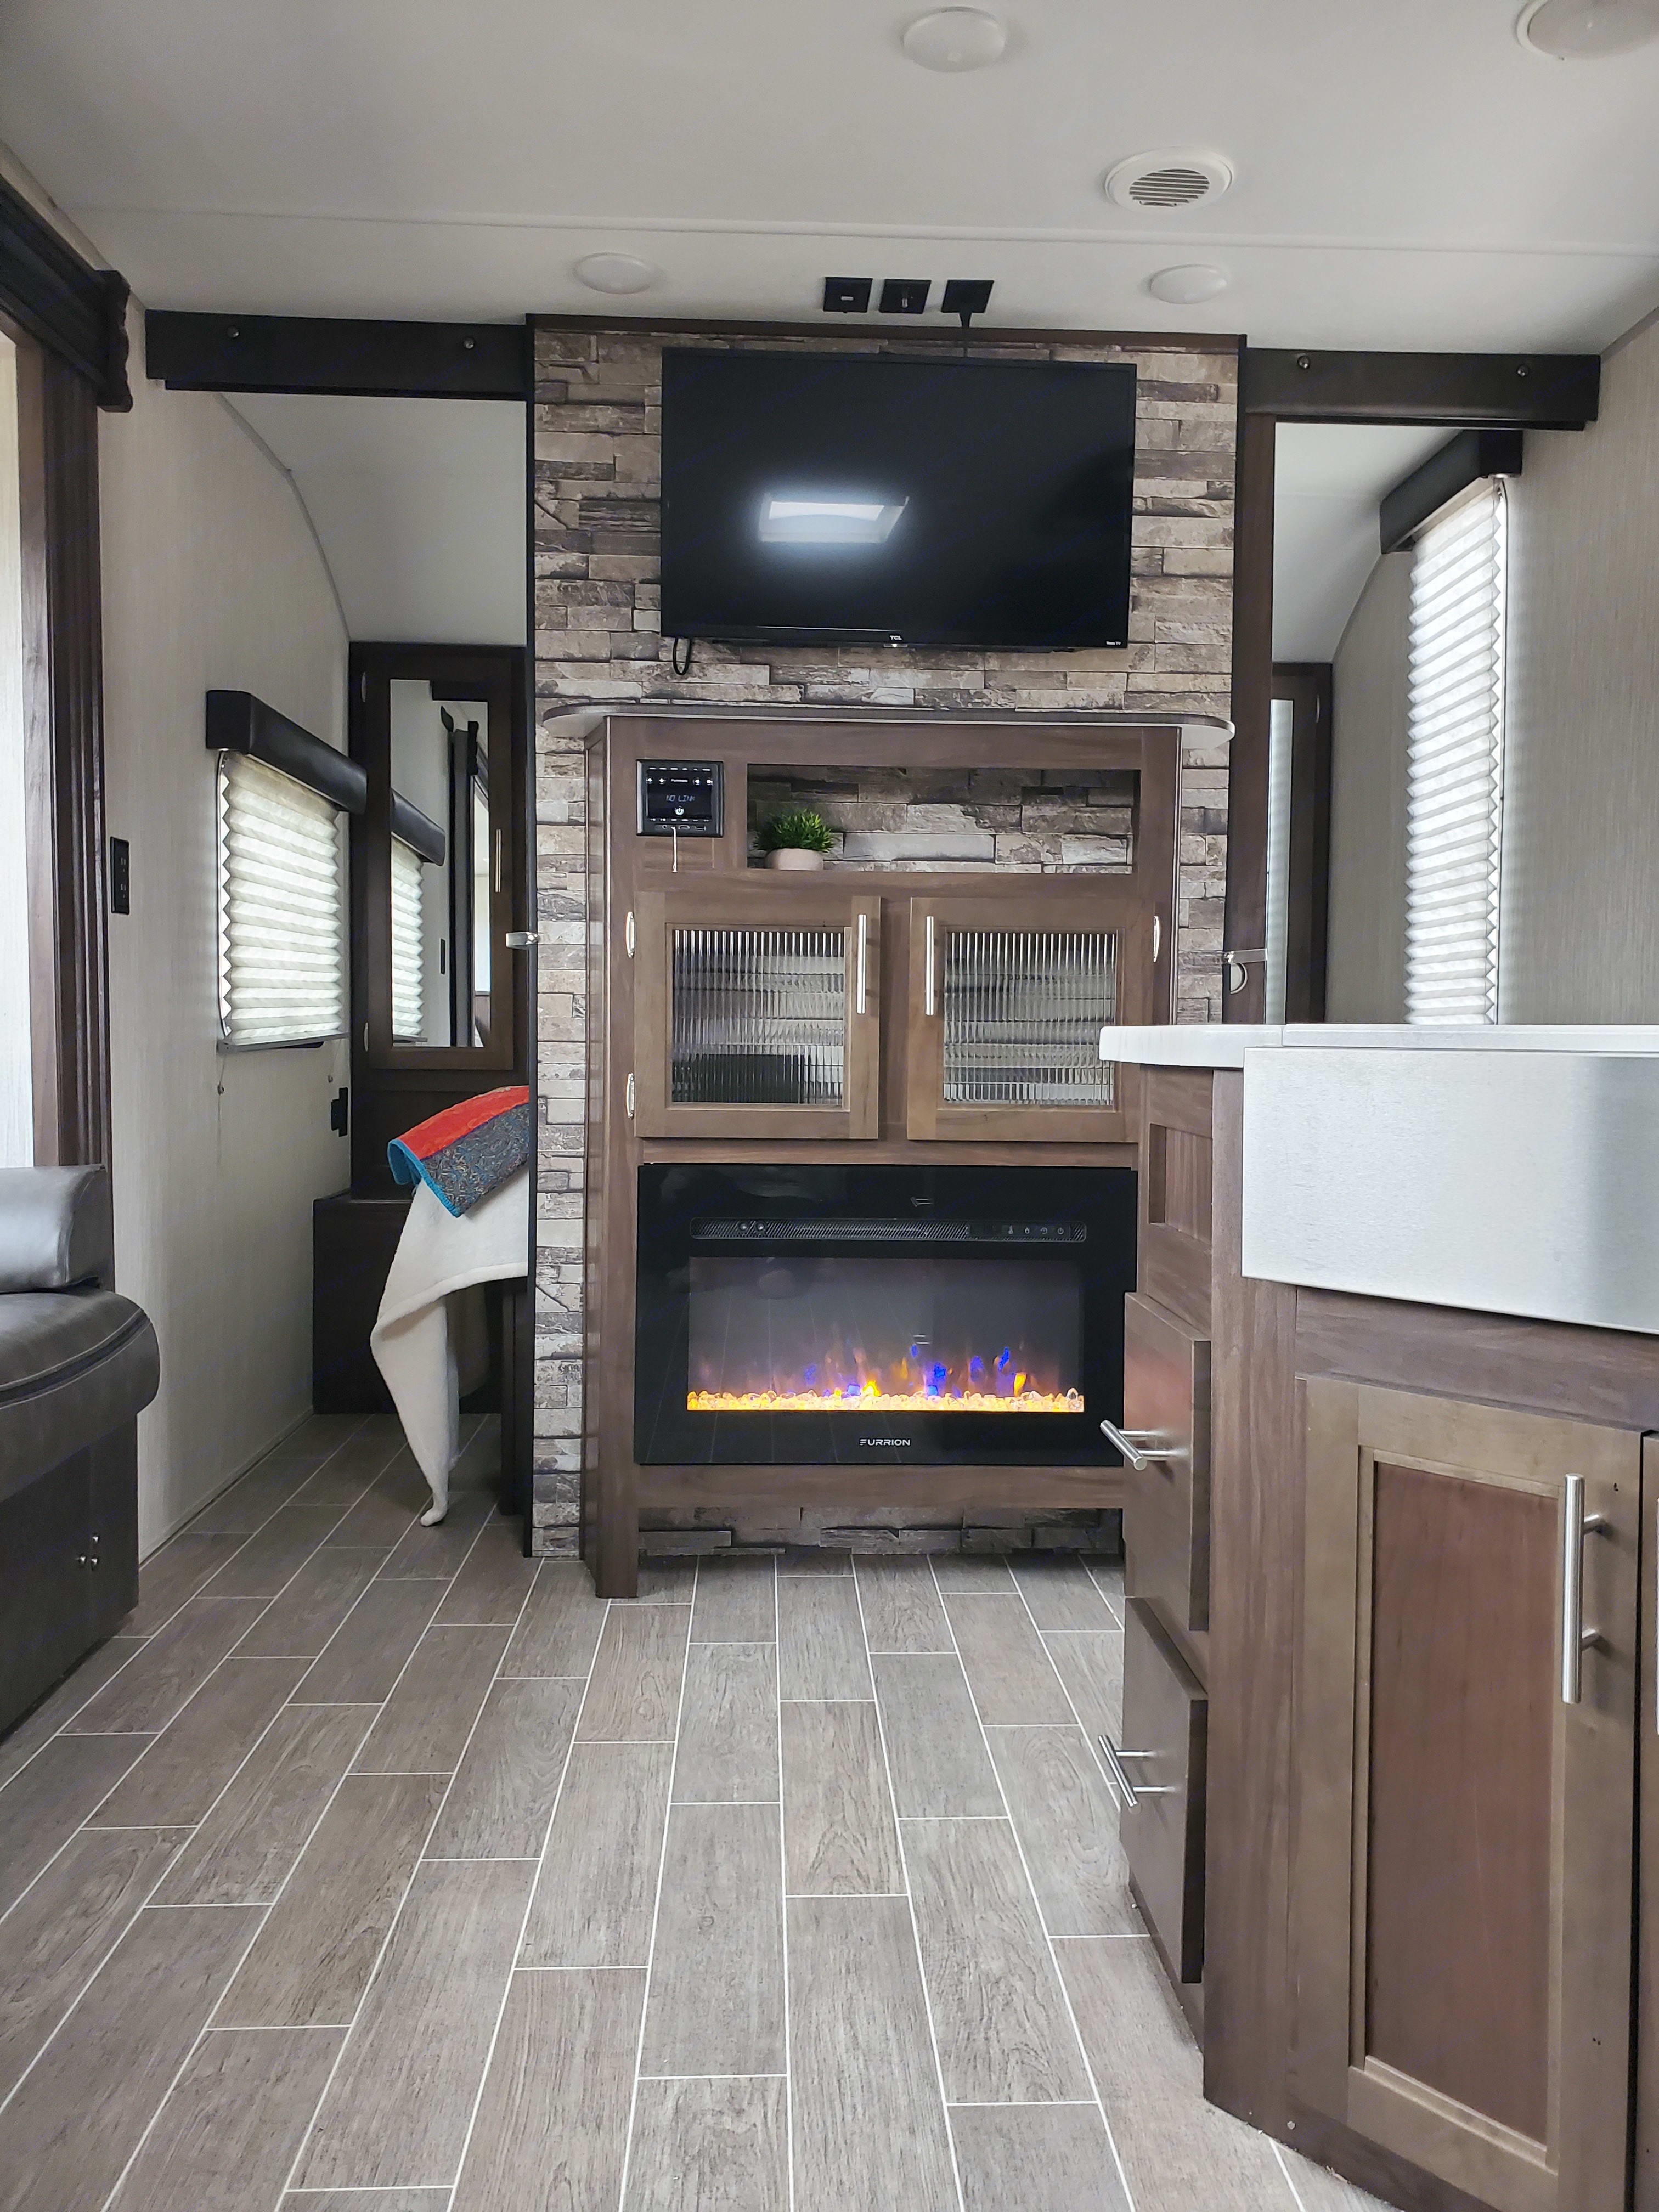 Set the fire for ambience or turn on the heat also! We also have a furnace that runs through out the trailer. . Forest River Cherokee Grey Wolf 2020